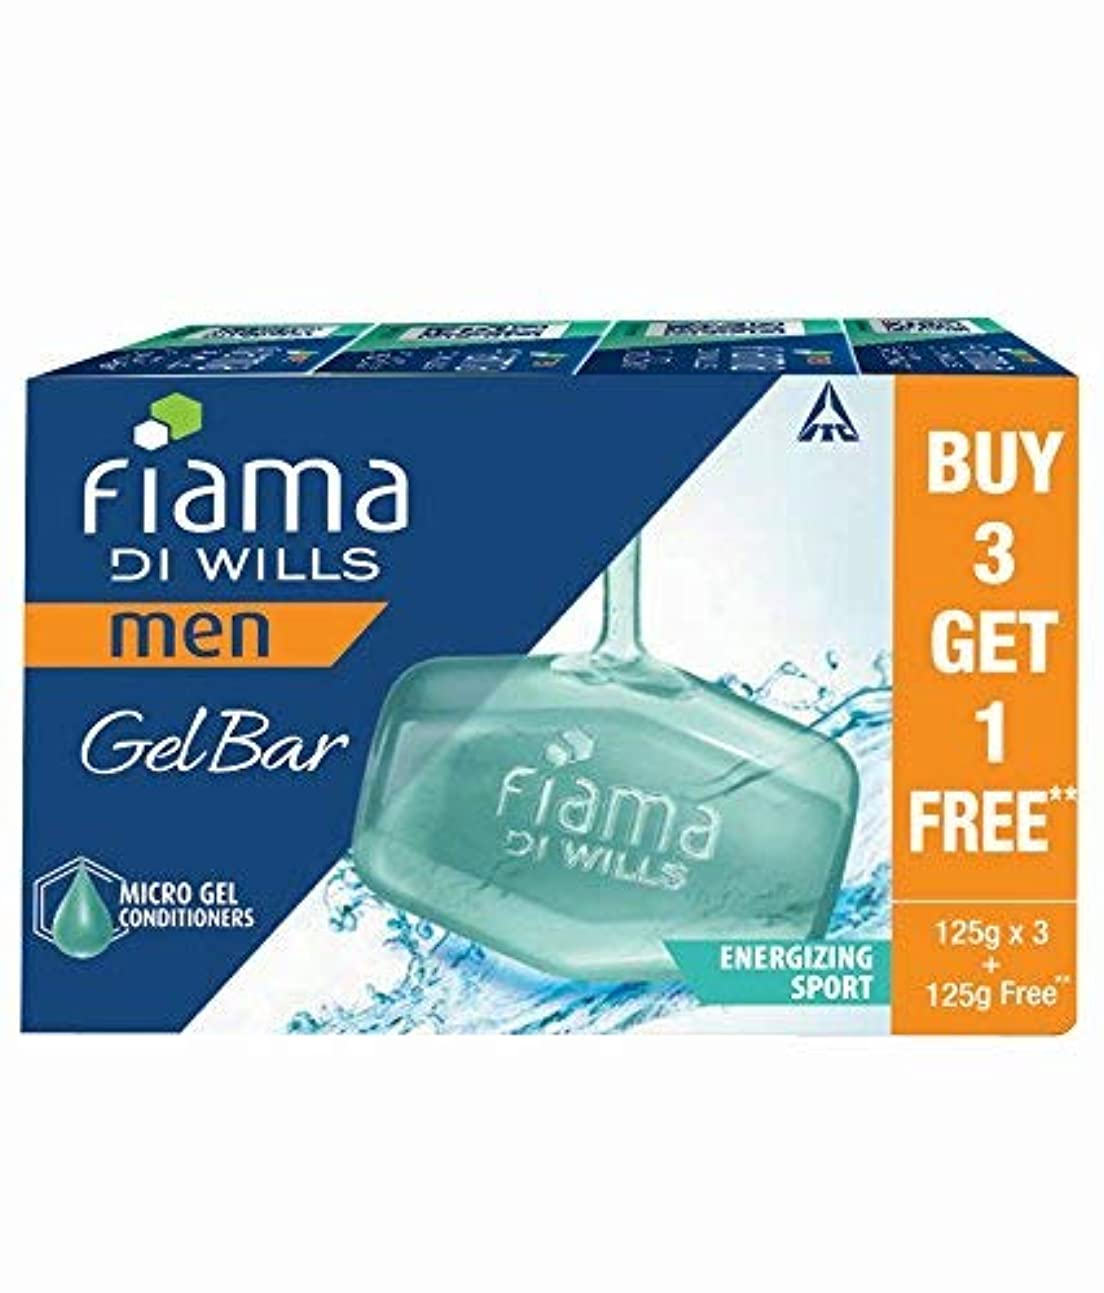 流暢酸度クリップ蝶Fiama Di Wills Men Energizing Sport Gel Bar, 125g (Buy 3 Get 1 Free)